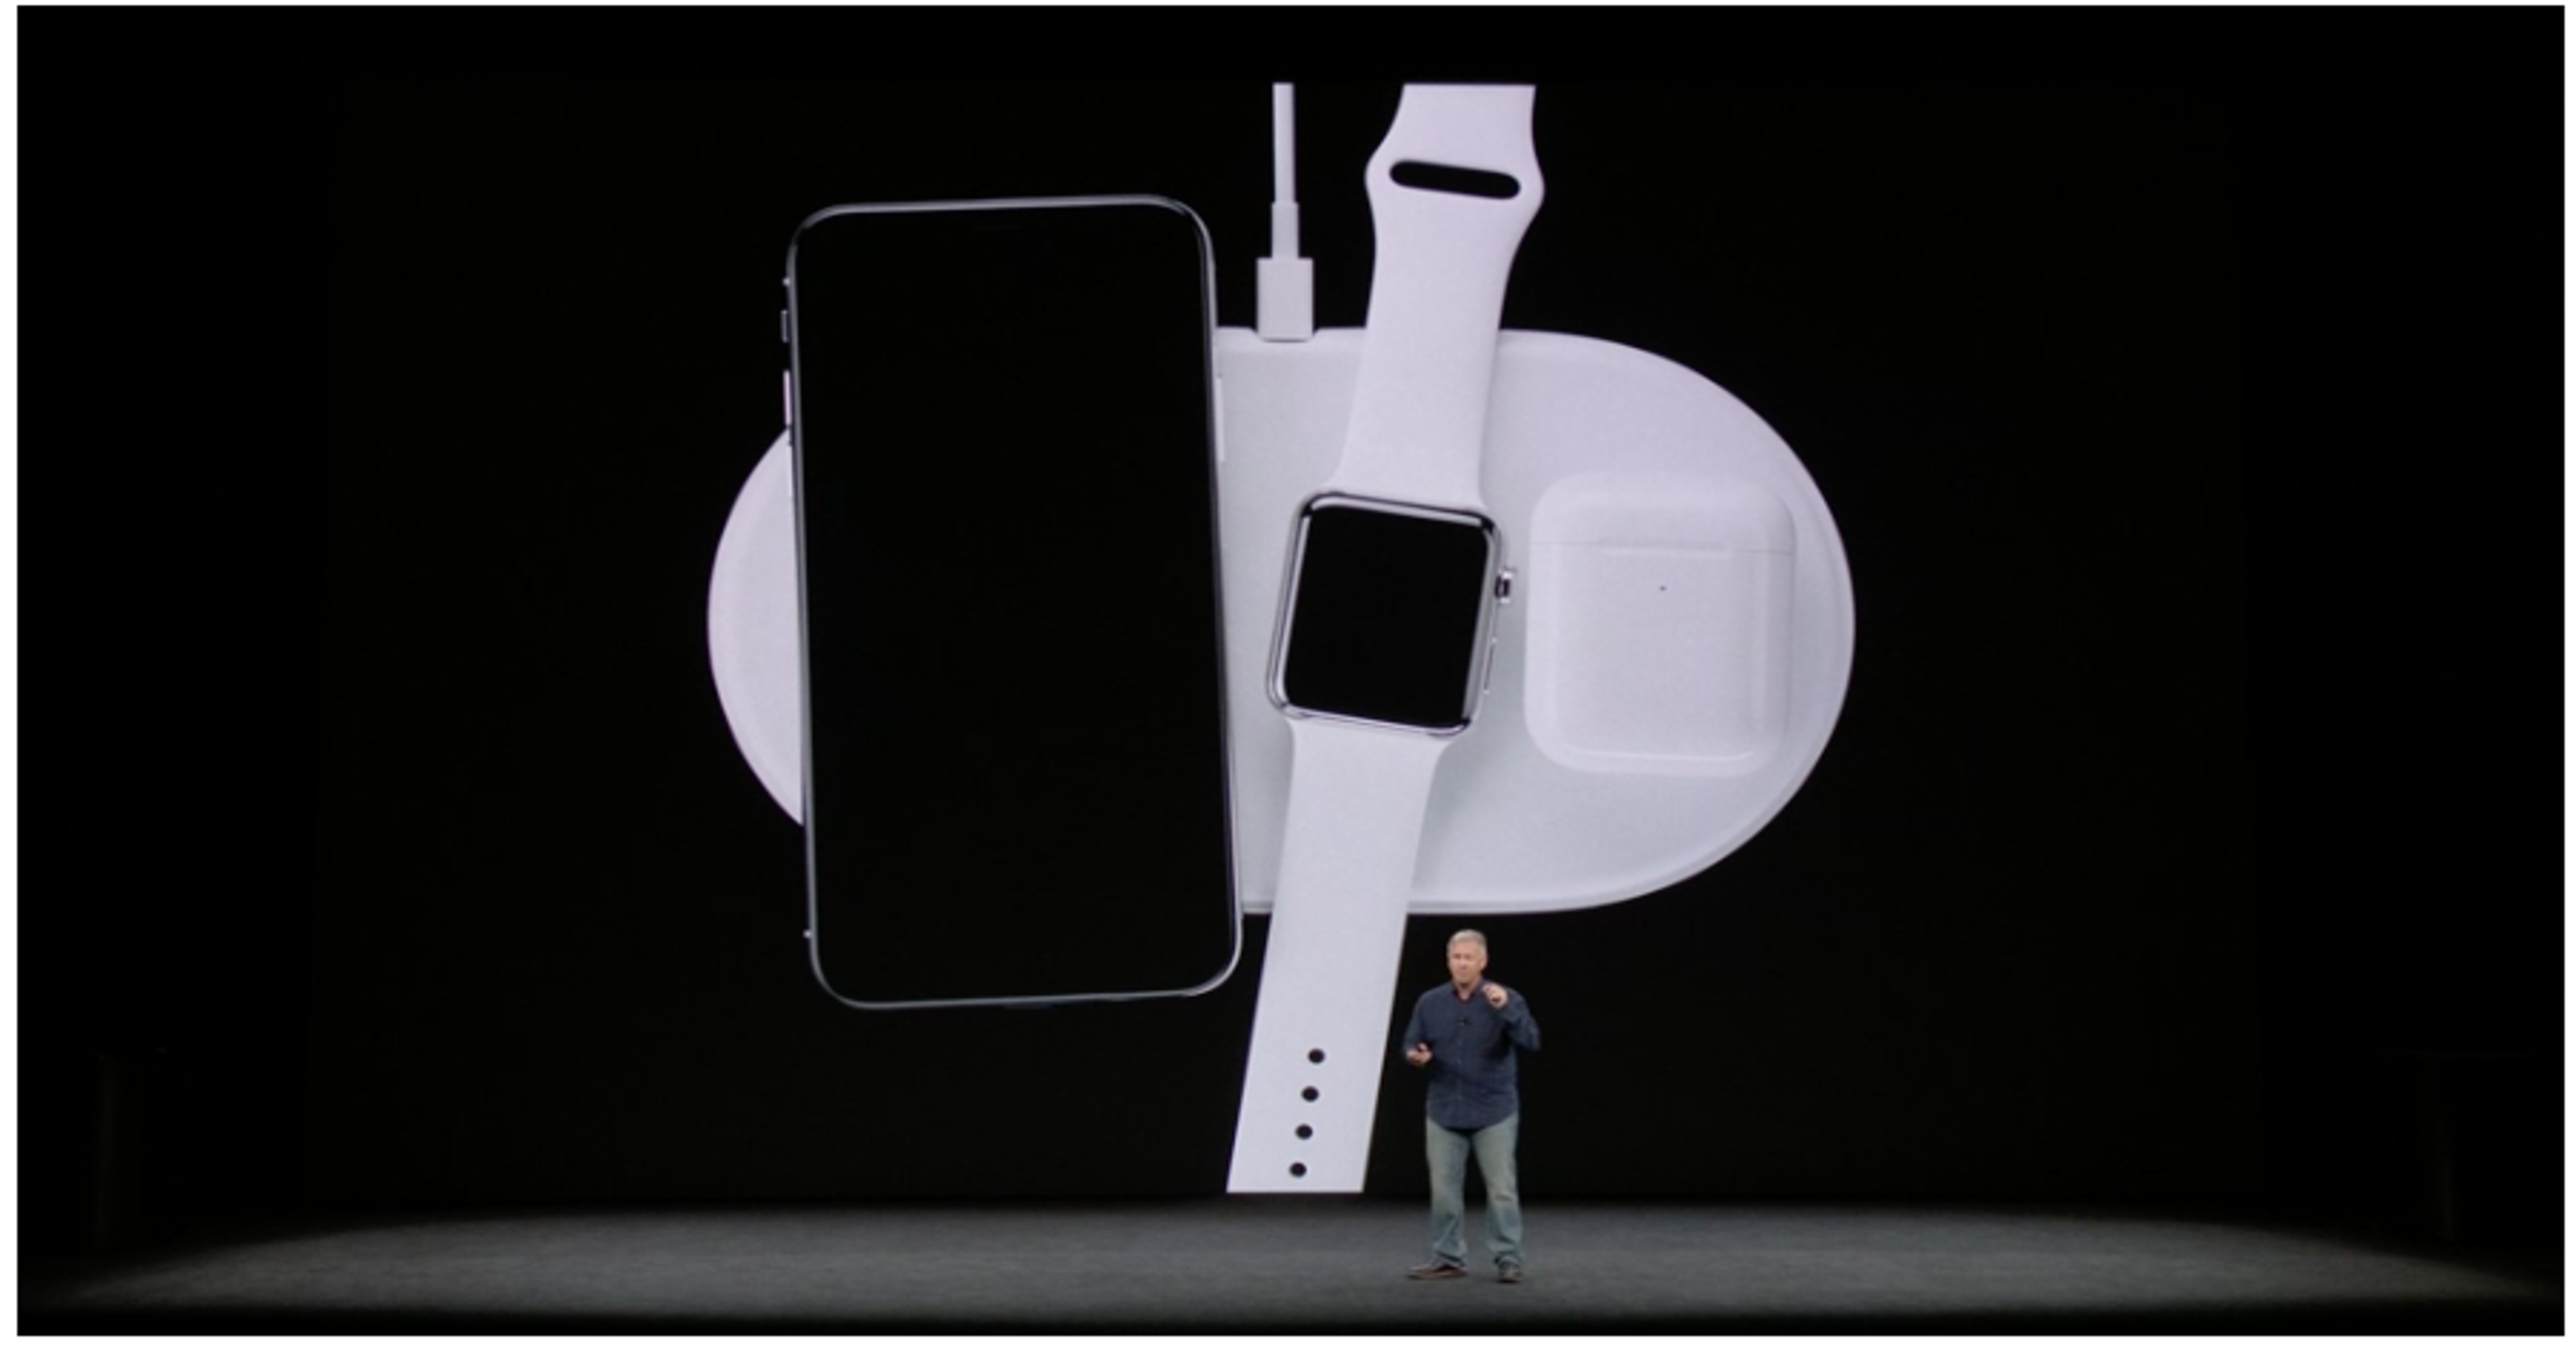 iPhone 8, iPhone X wireless charging with Qi, AirPower